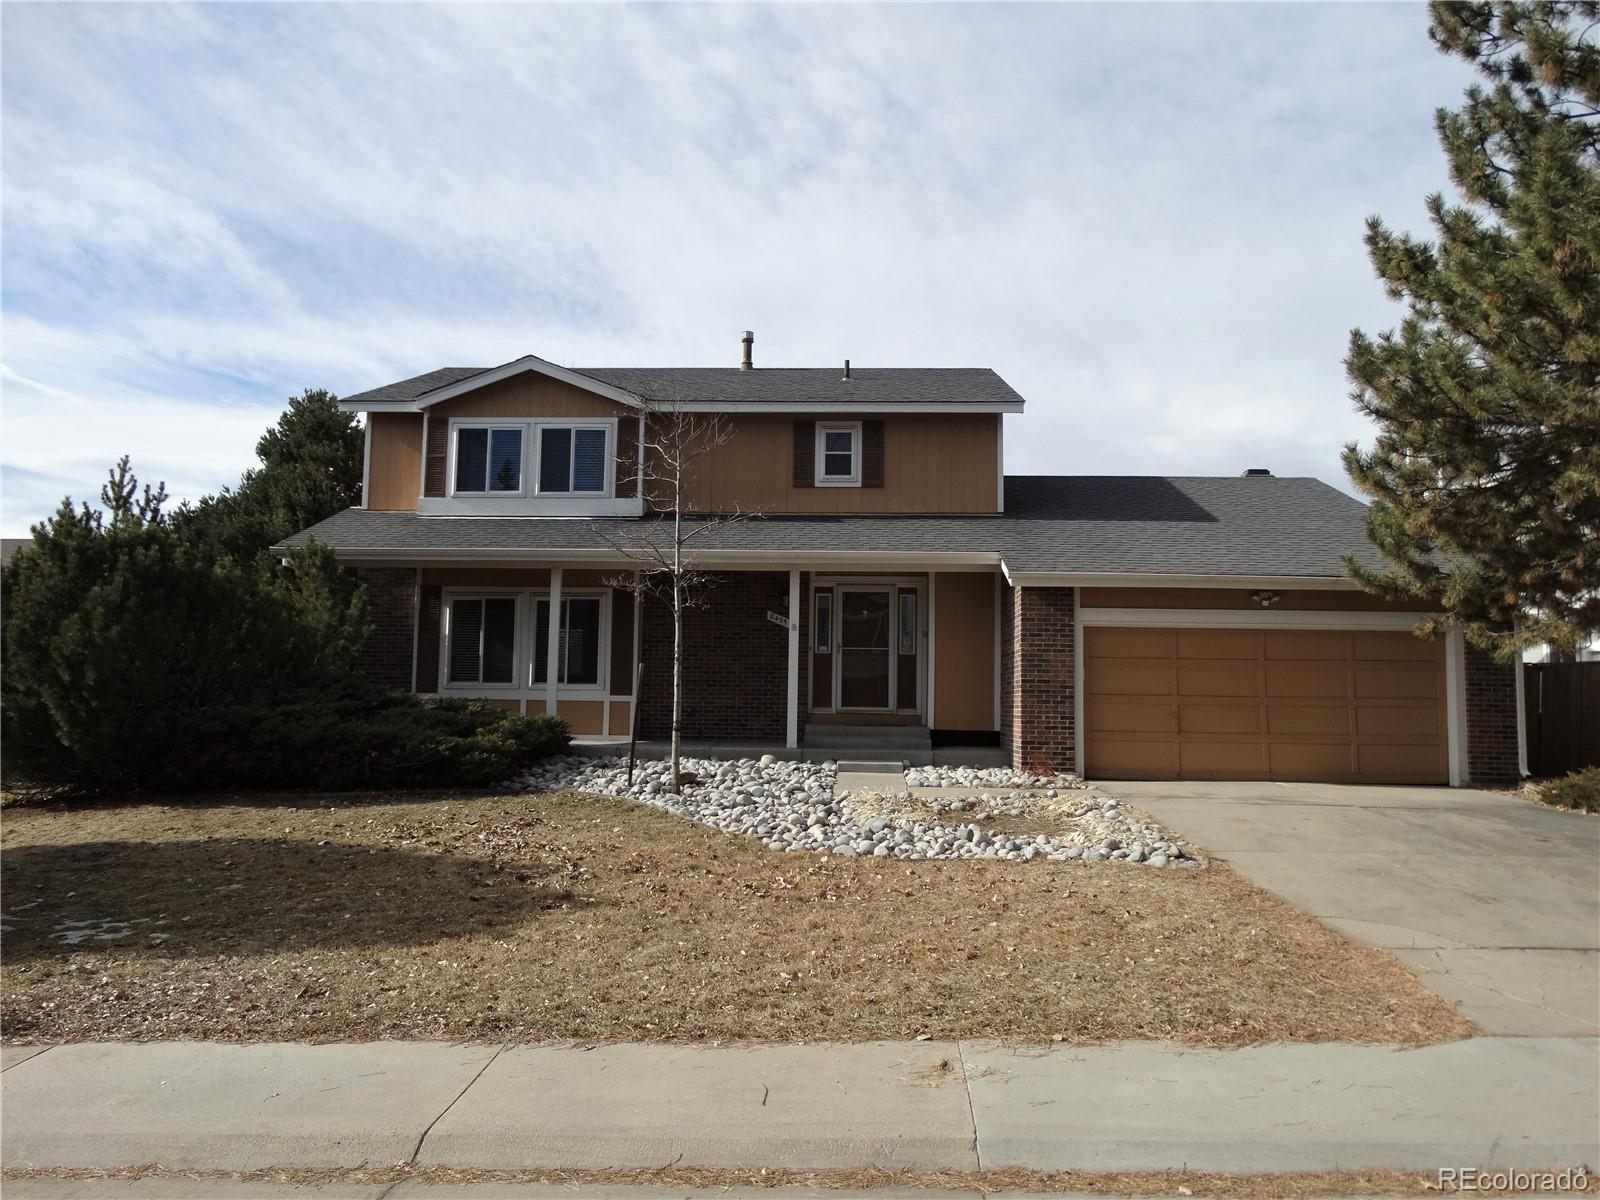 8455 S Wildcat Street, Highlands Ranch, CO 80126 - Highlands Ranch, CO real estate listing